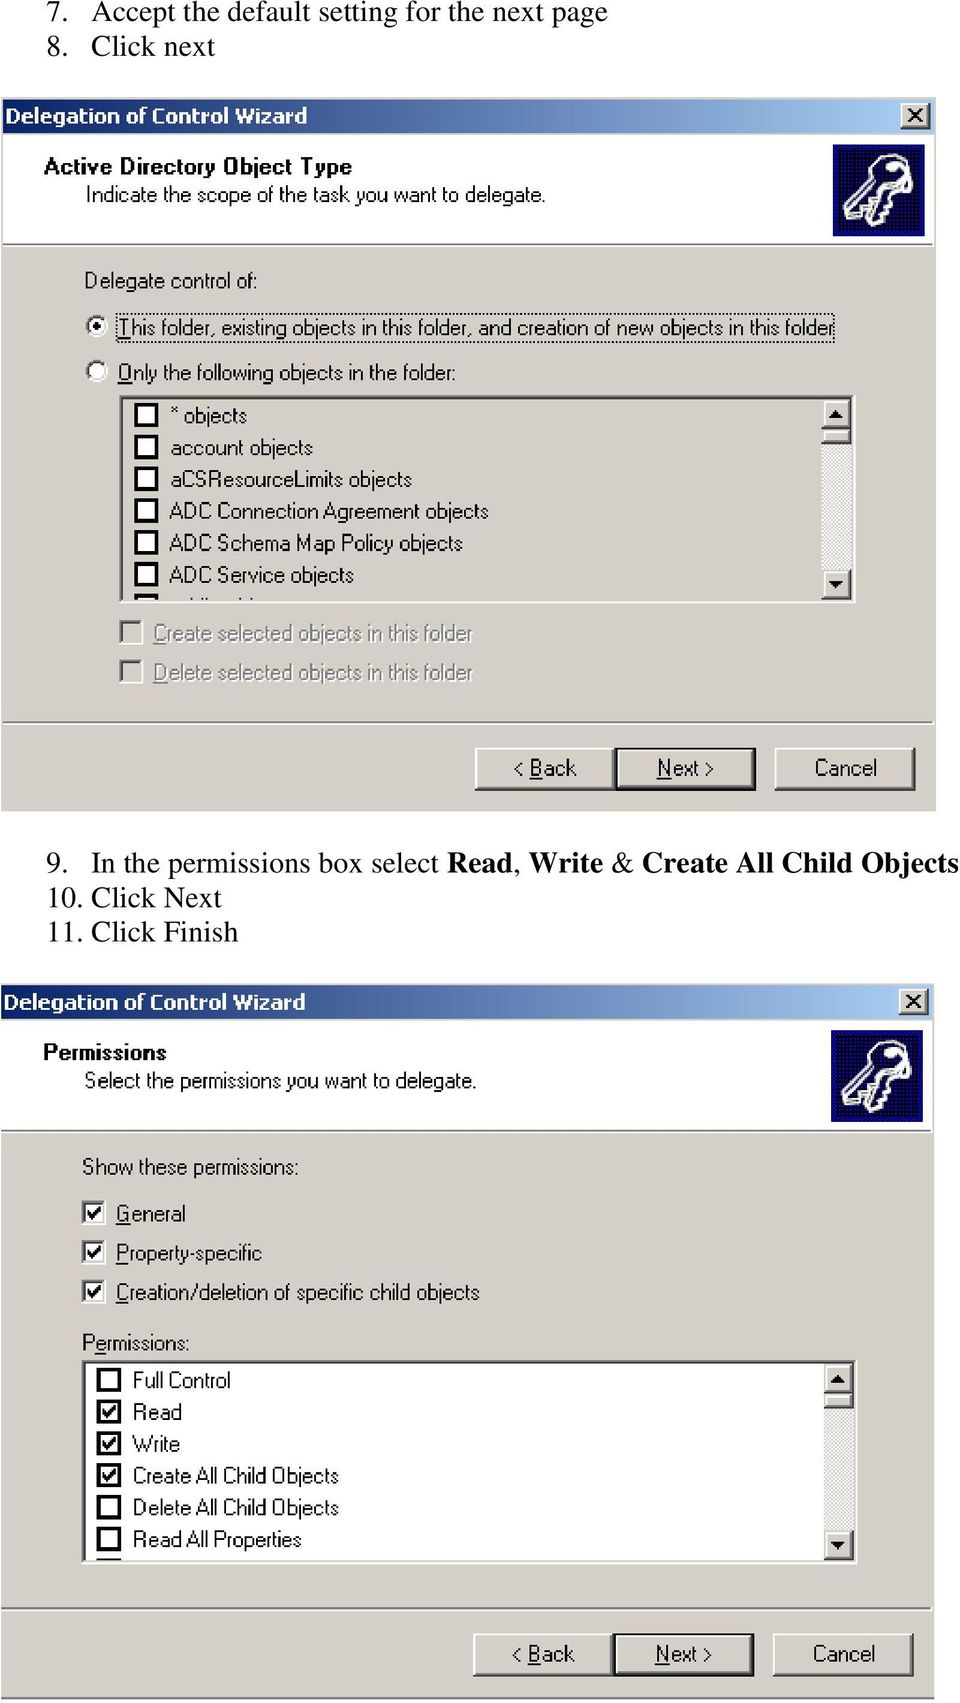 In the permissions box select Read, Write